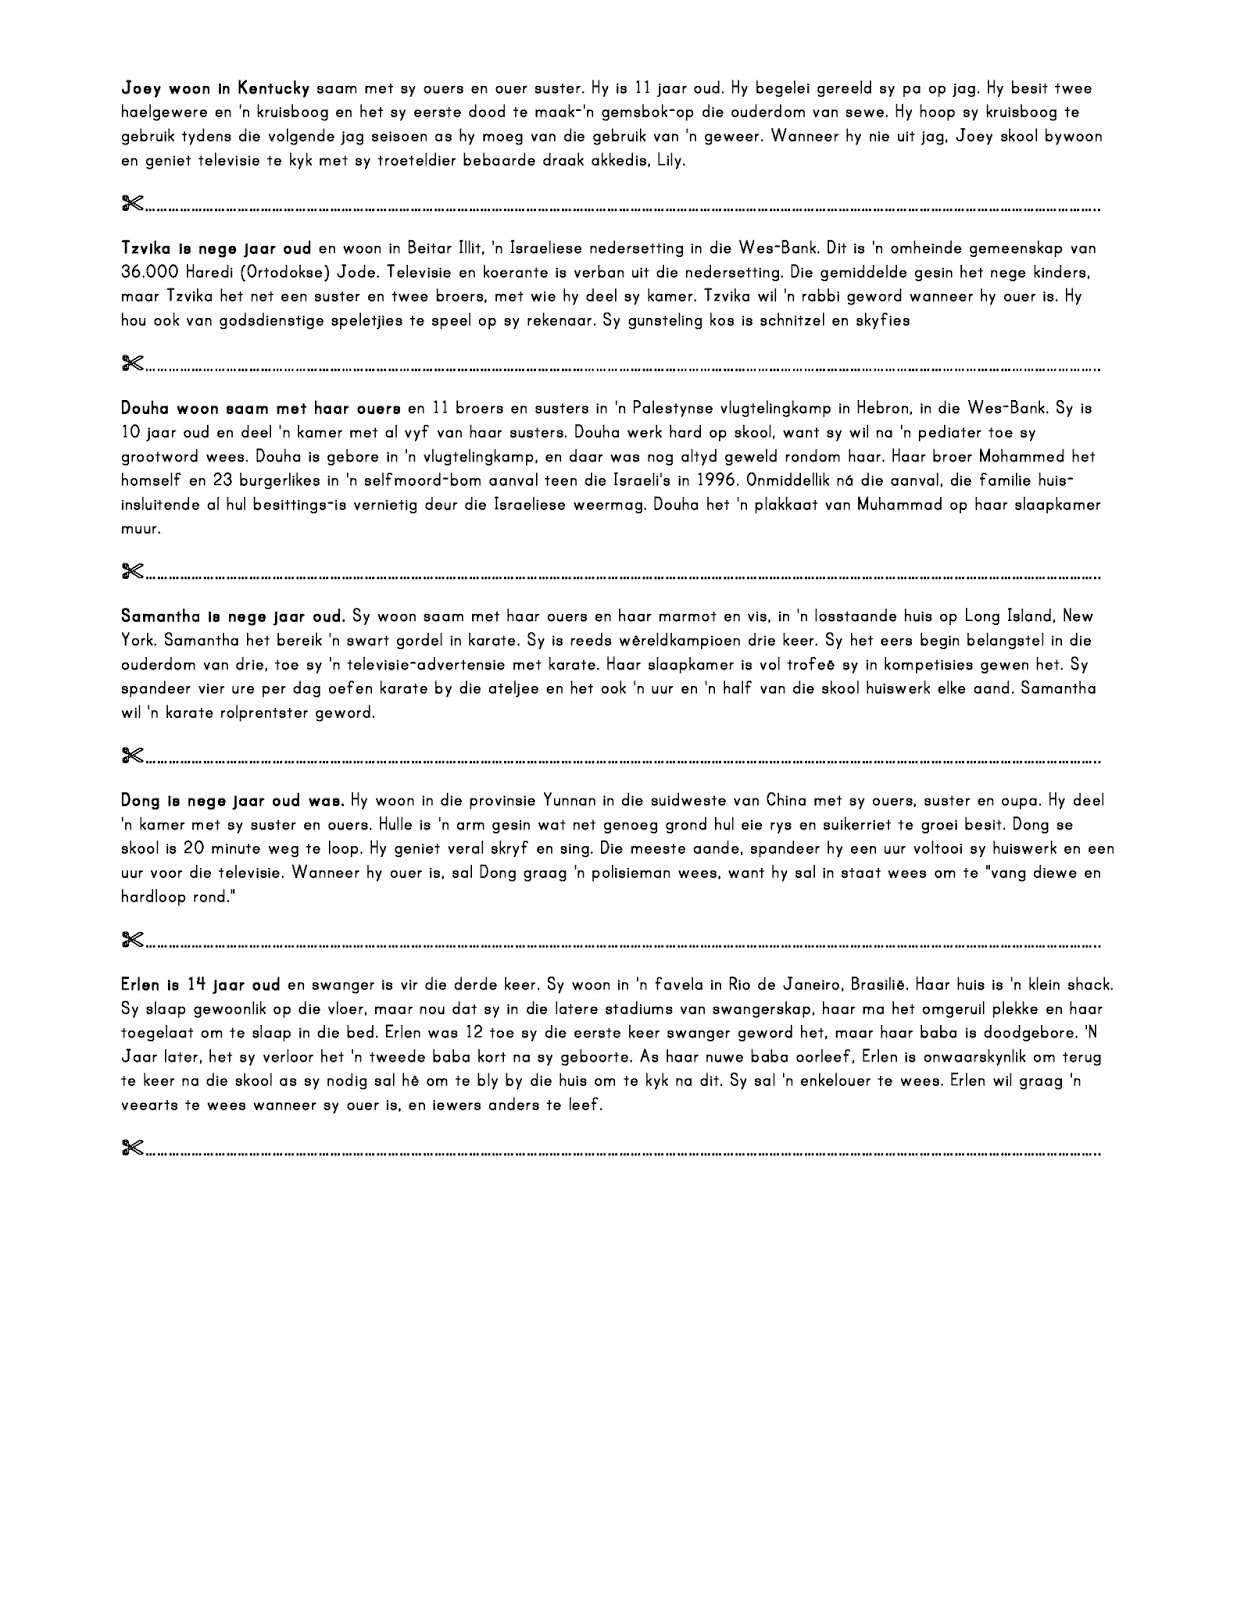 016 Essay Example Fototext Page Jpg National Junior Honor Society Unusual Samples Full